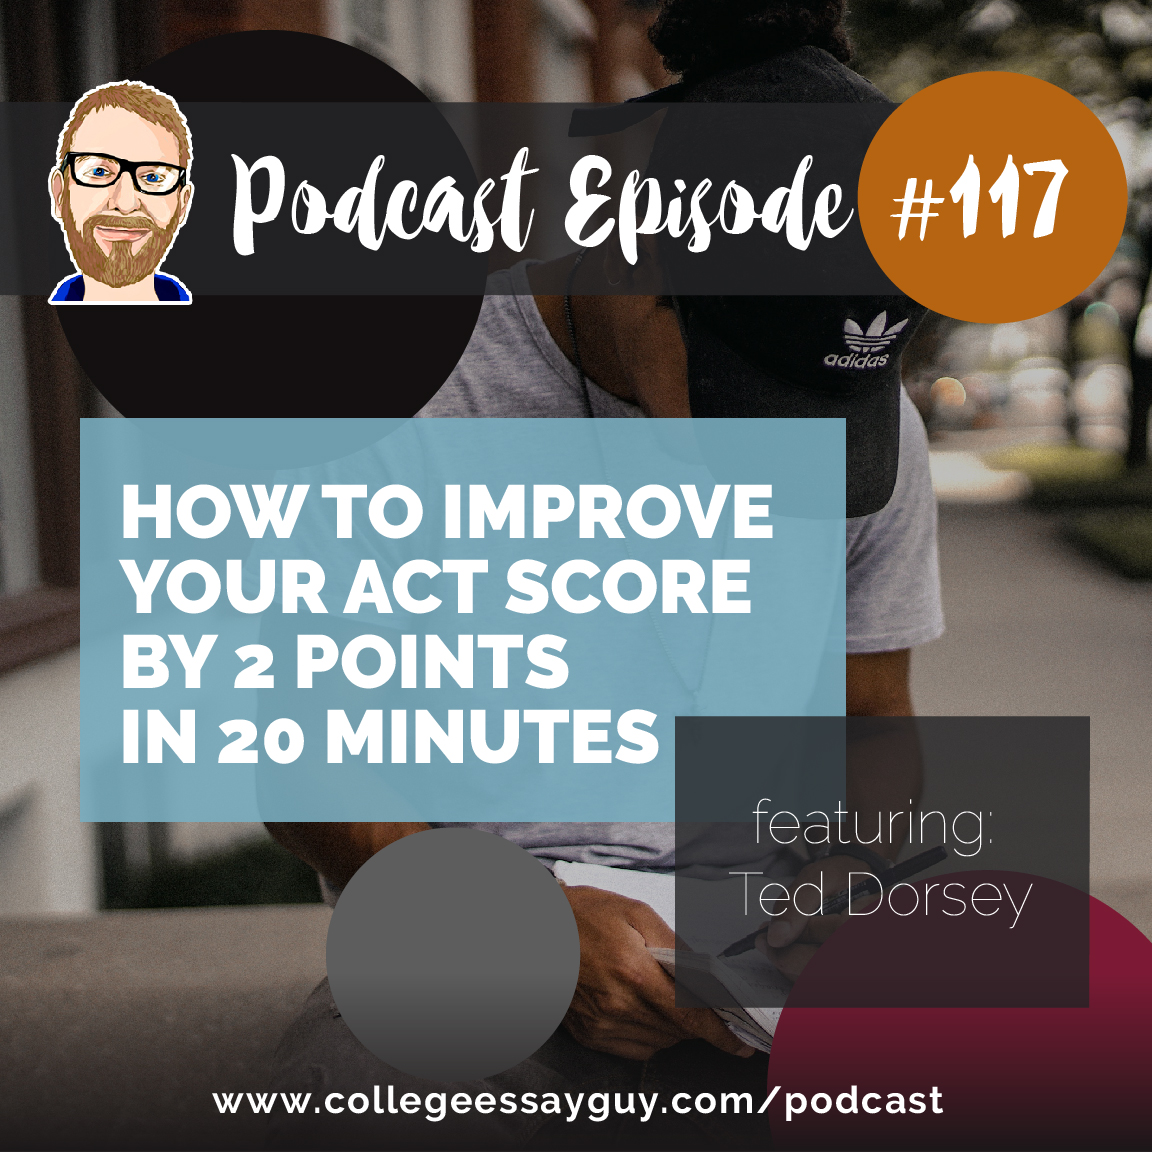 I've handed the reins over to my guest Ted Dorsey (AKA Tutor Ted), who has scored perfectly on the SAT, ACT, and PSAT, and let him do the podcast, where he's going to offer up clear steps to improving your ACT score--in less time than it takes to bake a potato.